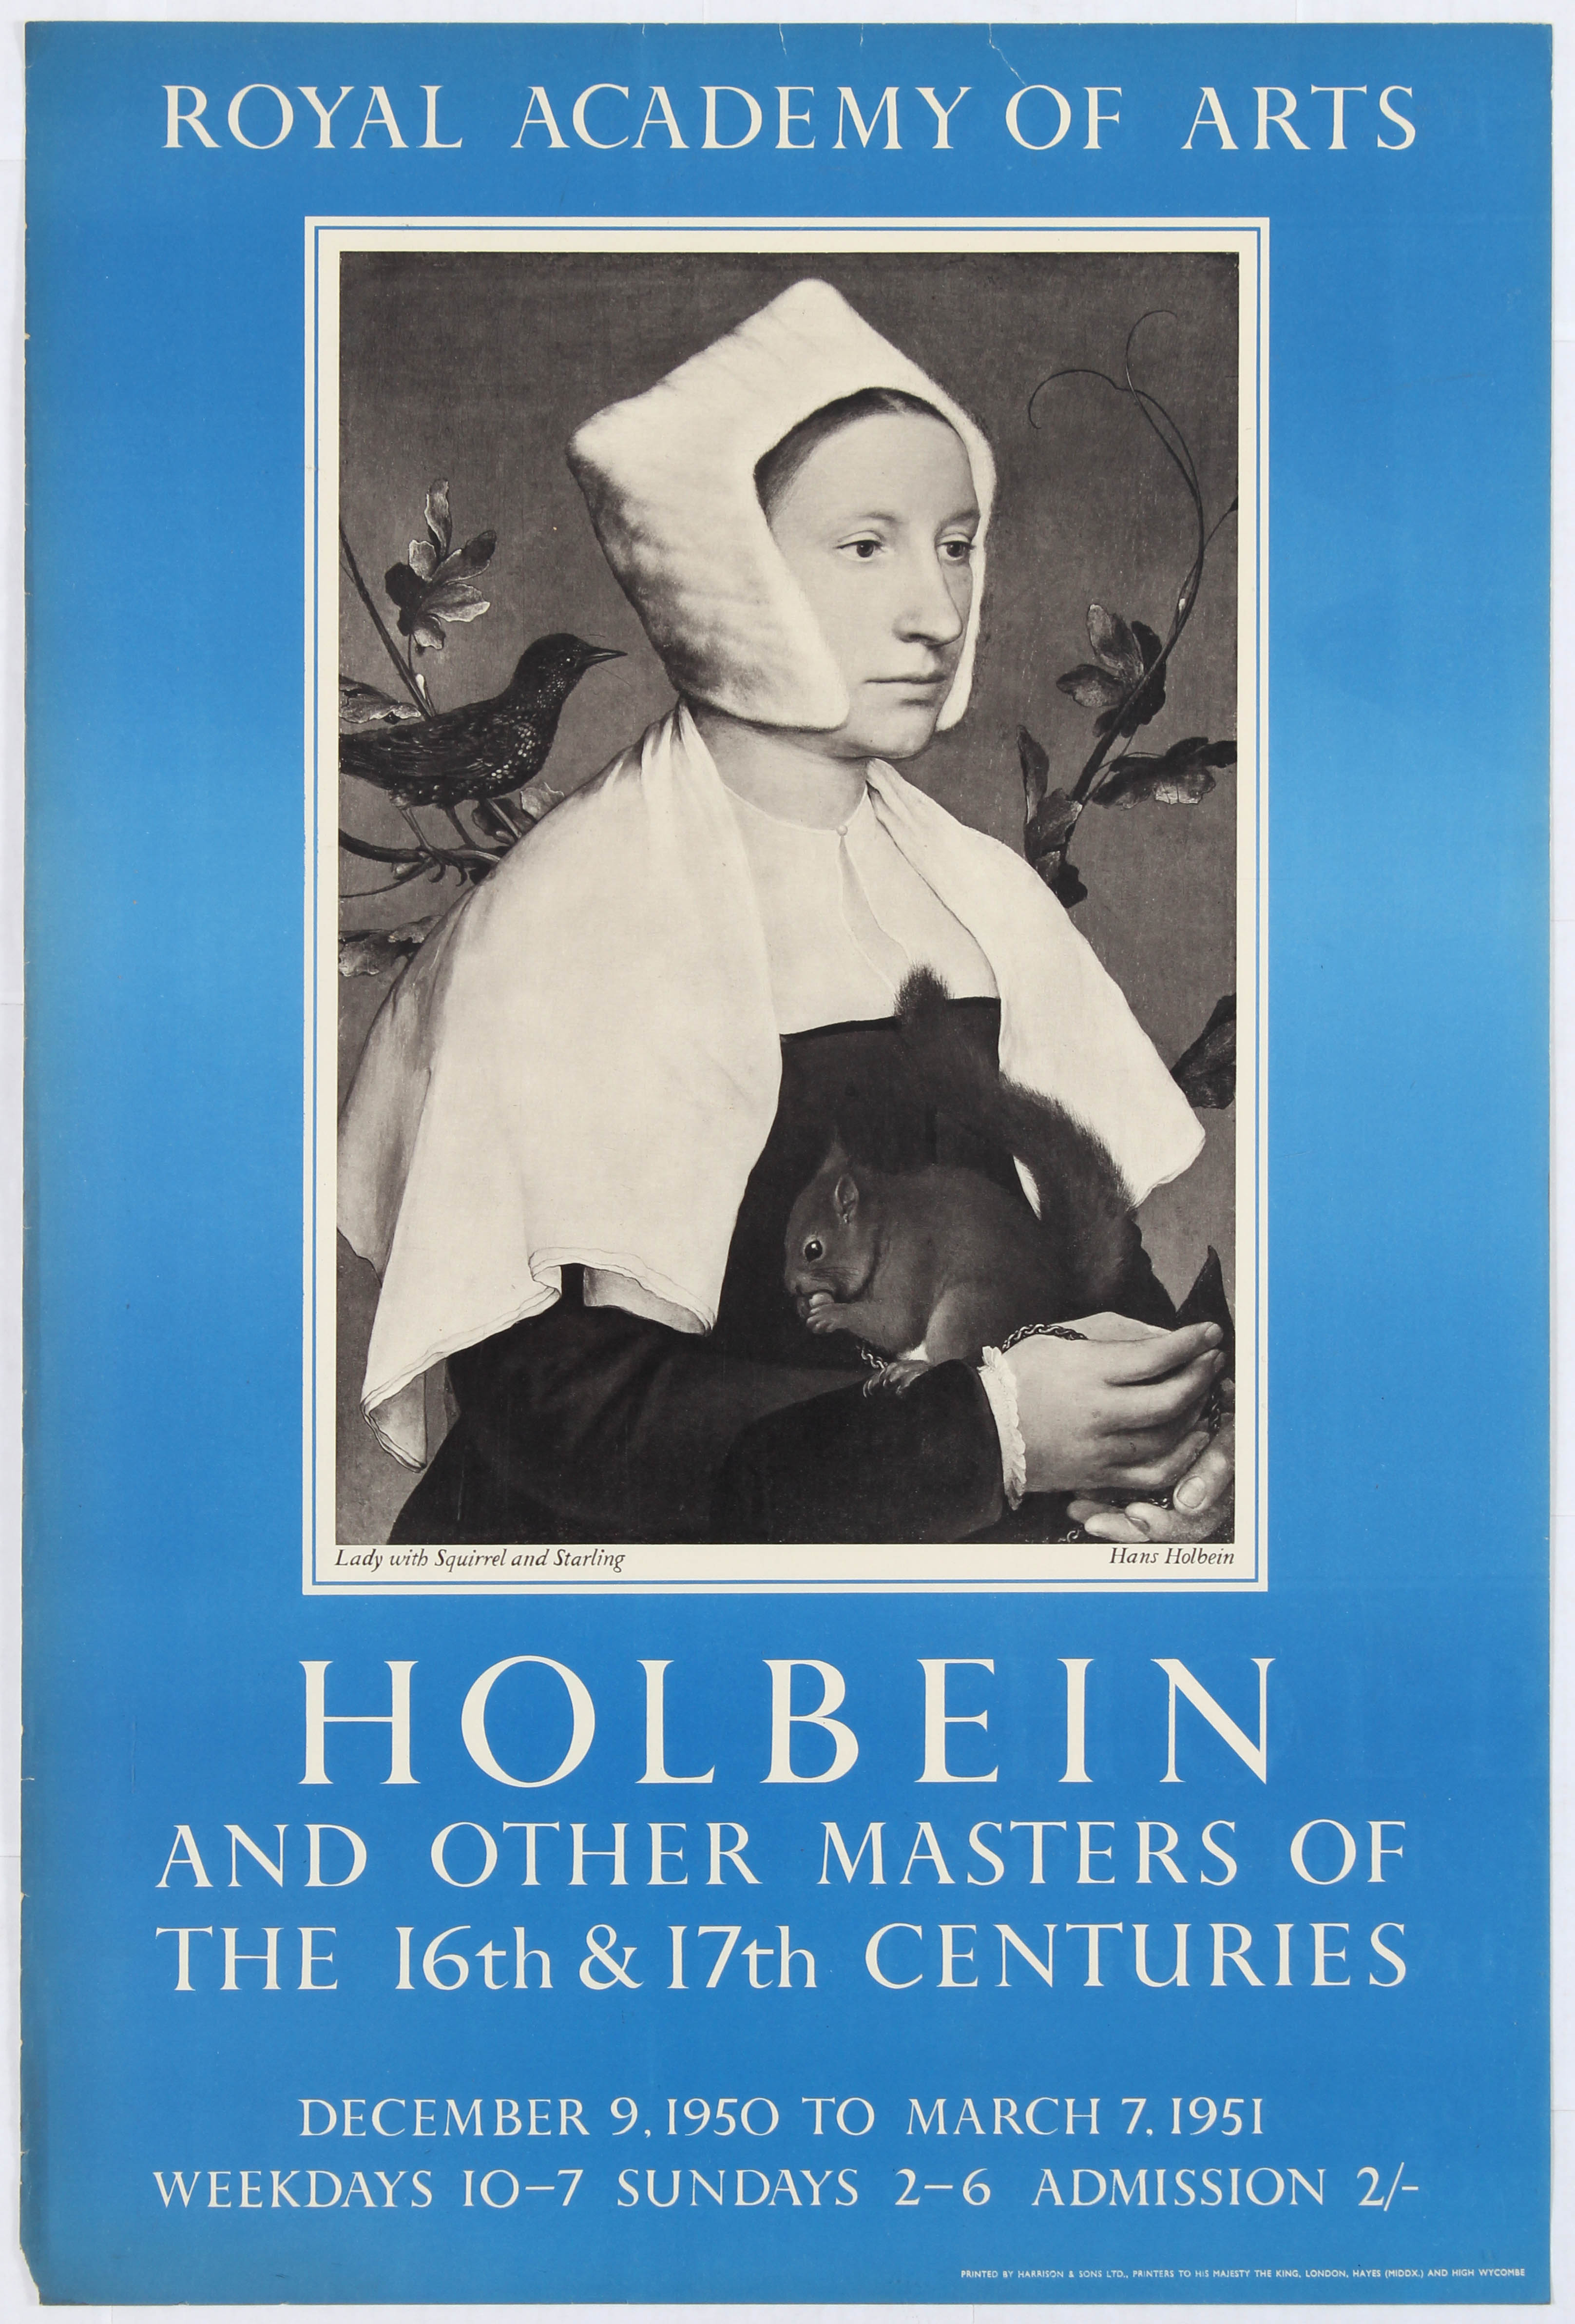 Lot 1511 - Advertising Poster Royal Academy of Arts Holbein and other Masters of the 16th & 17th Century.